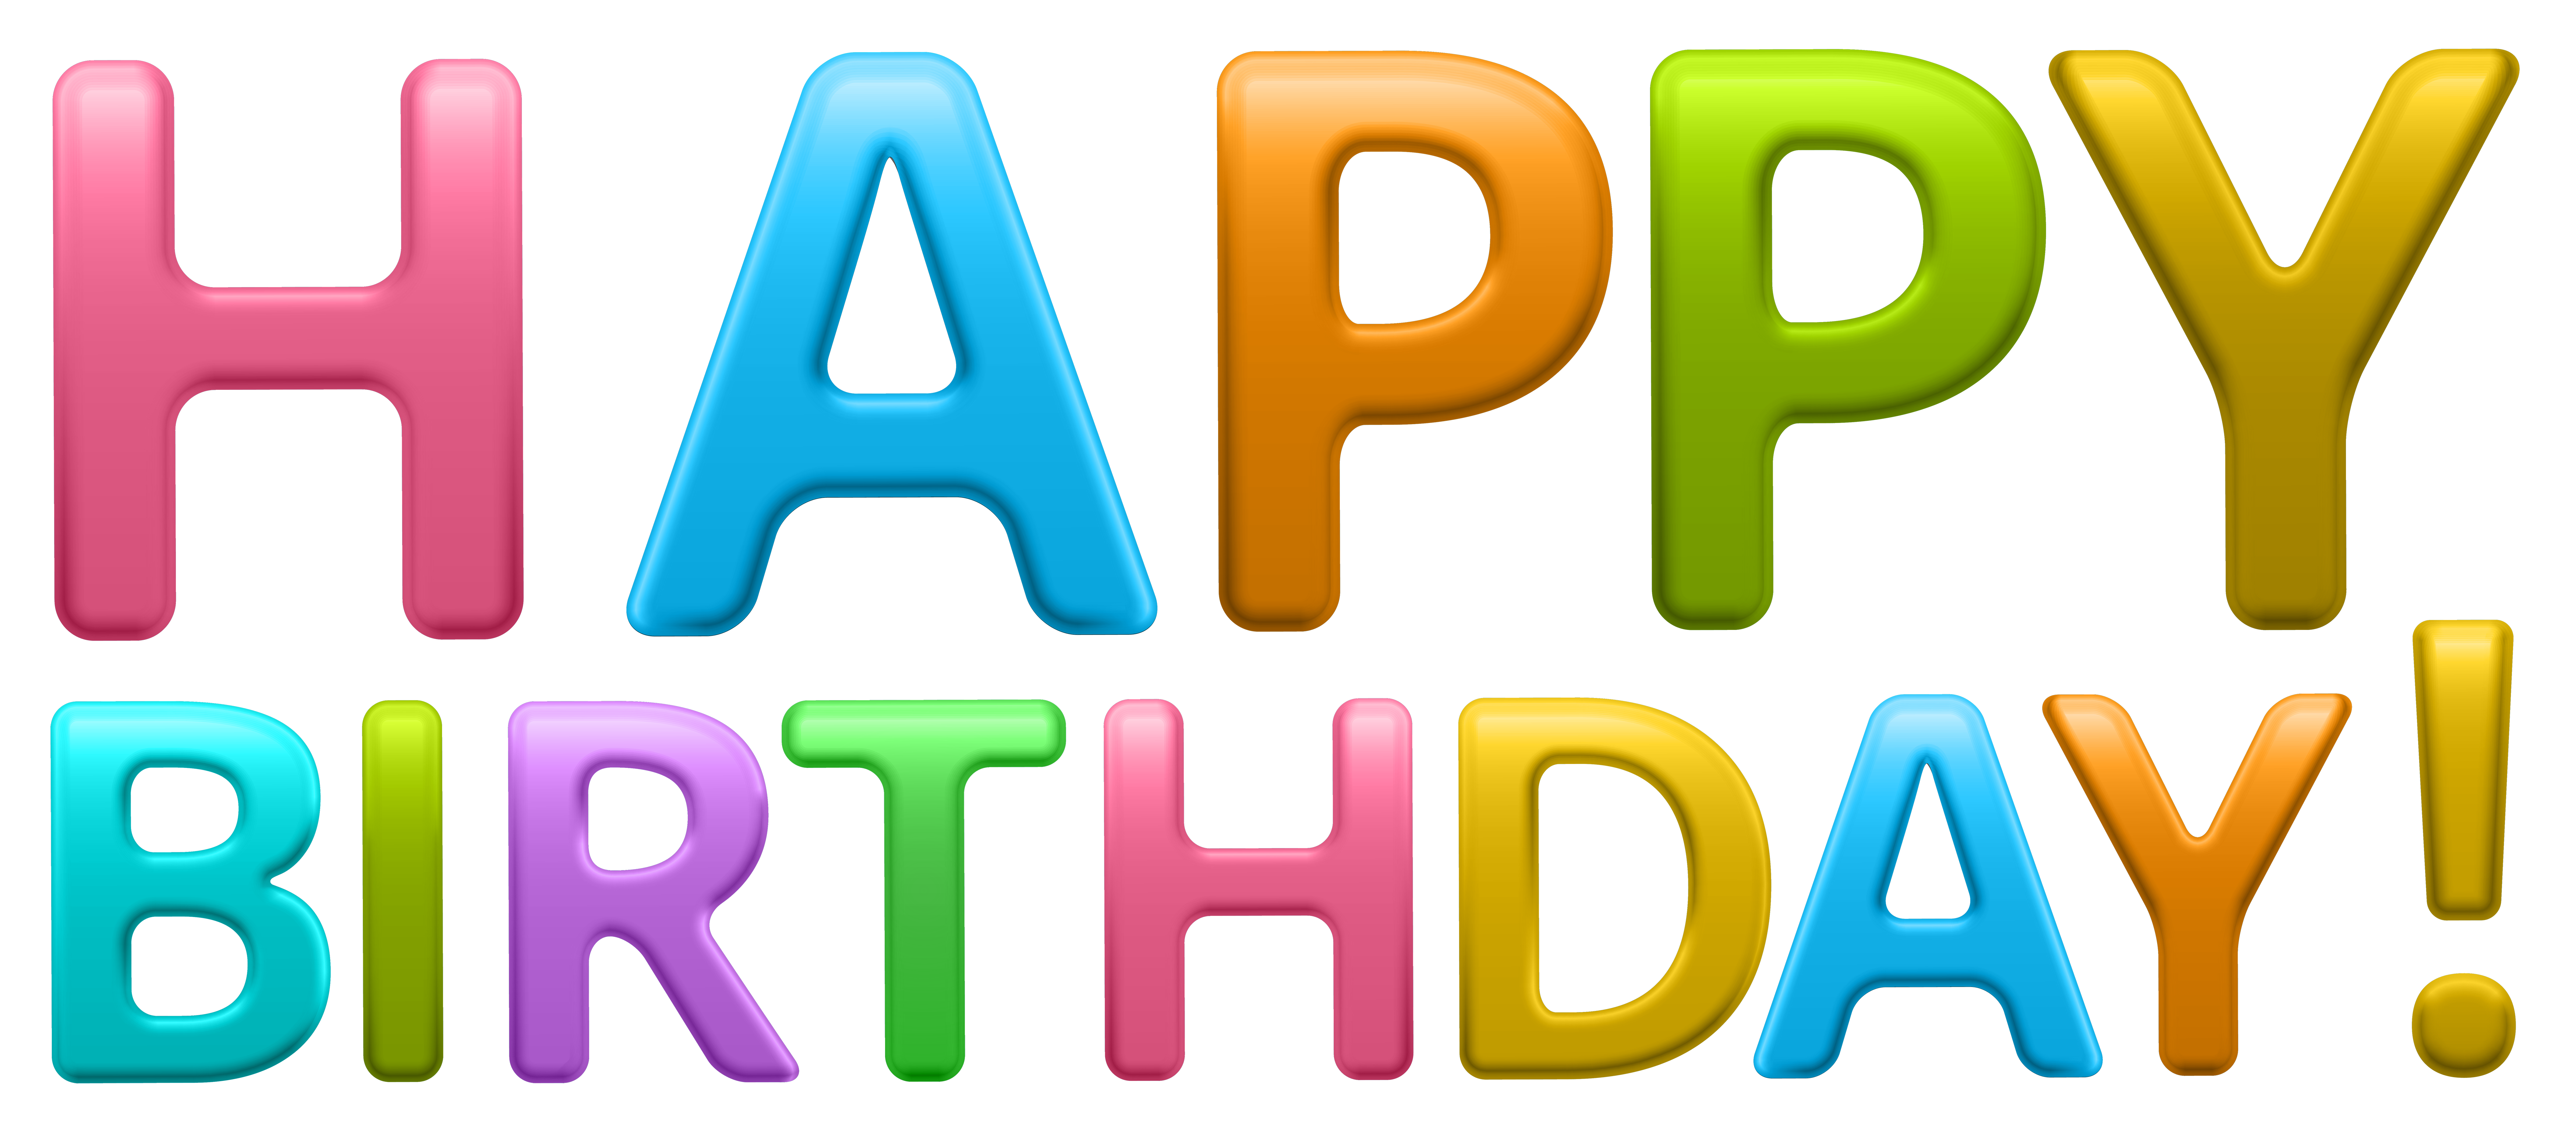 Paper clipart copy. Colorful happy birthday transparent